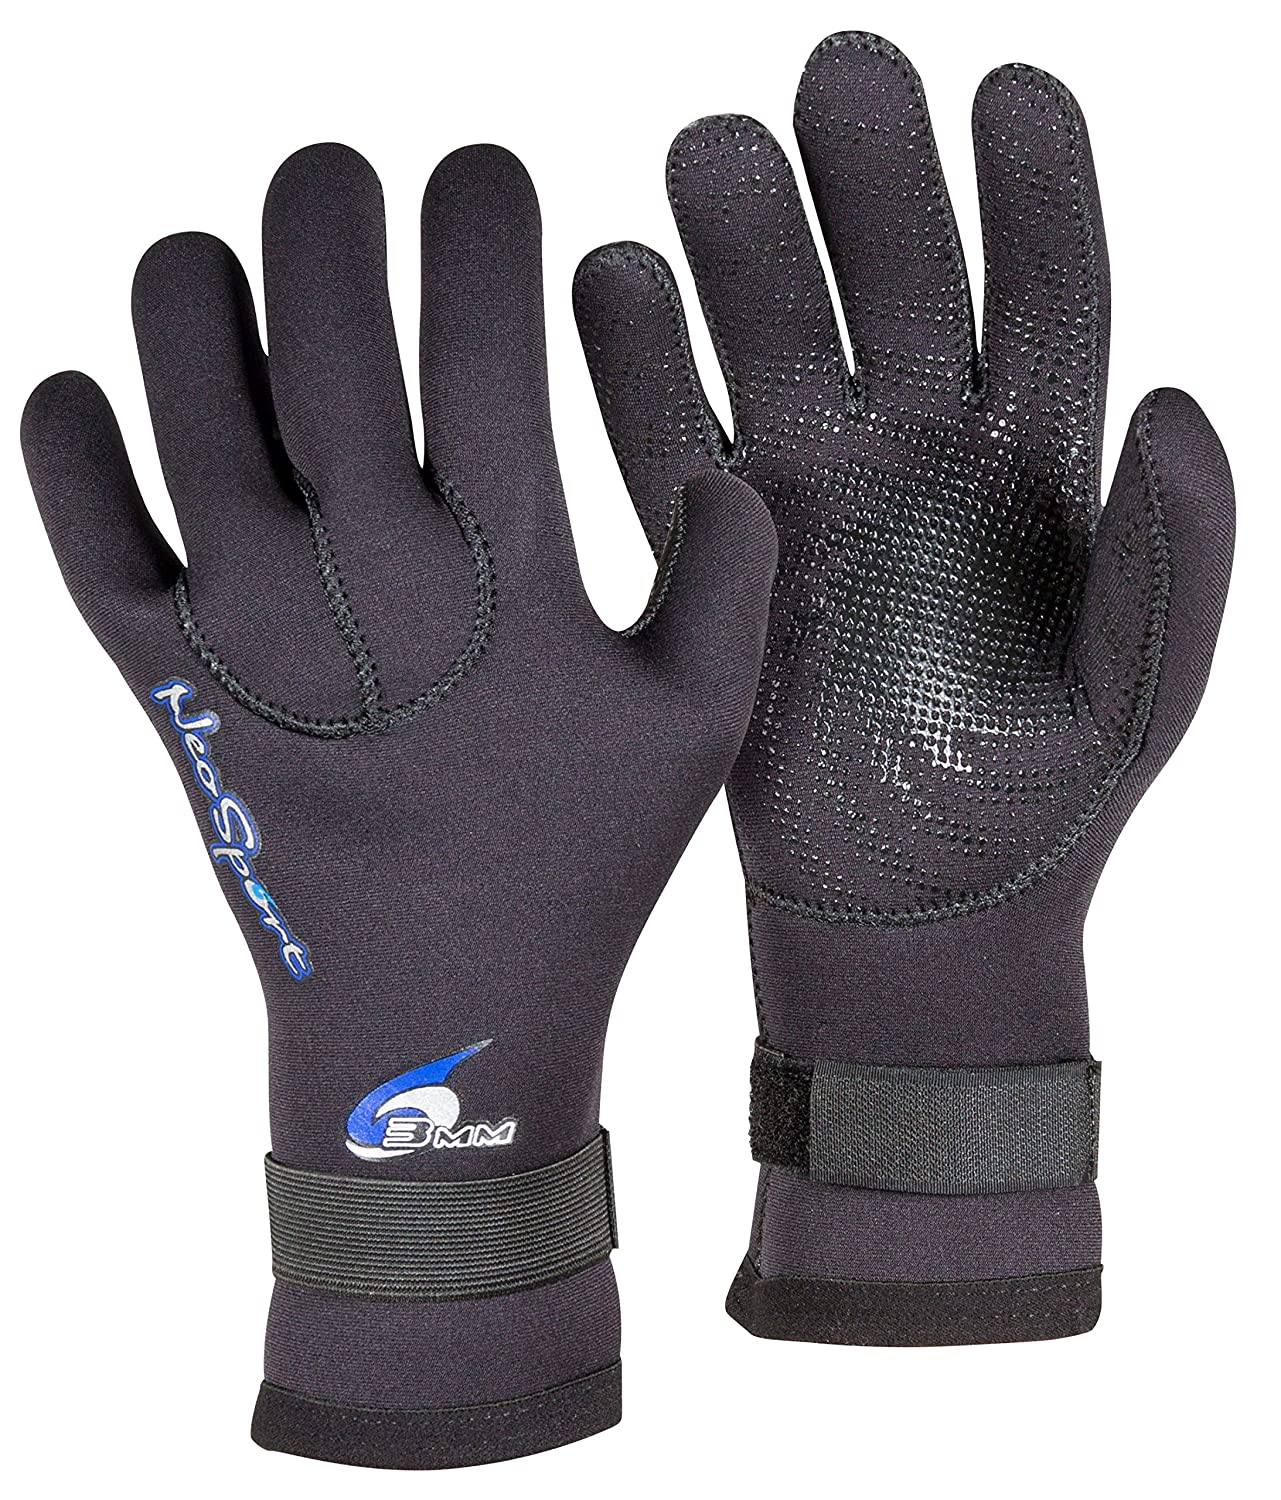 Neo Sport 3MM 5MM Premium Neoprene Five Finger Wetsuit Gloves with gator elastic wrist band. Use for all watersports diving boating cleaning gutters pond and aquarium maintenance